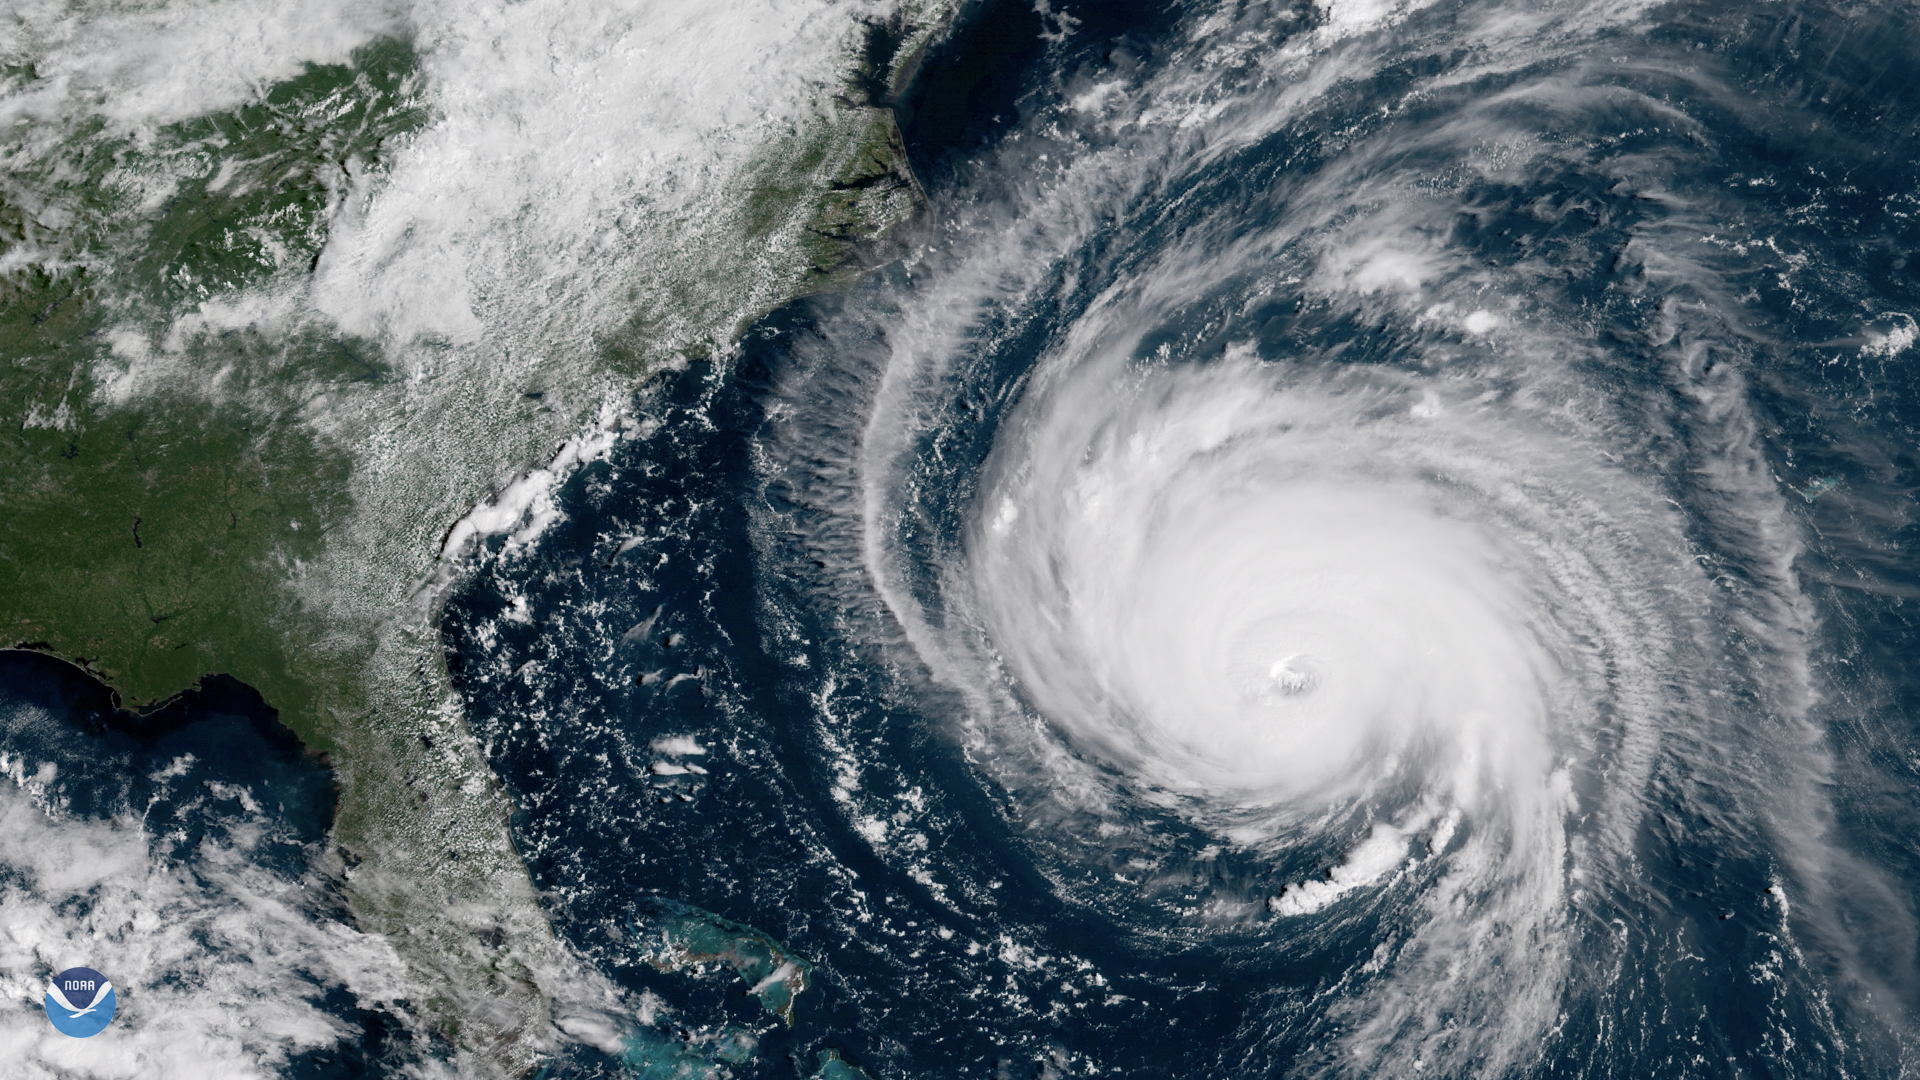 Double Edged Tweet: Hashtags Can Save Lives, Spread Disinfo During Disasters Like Hurricane Florence